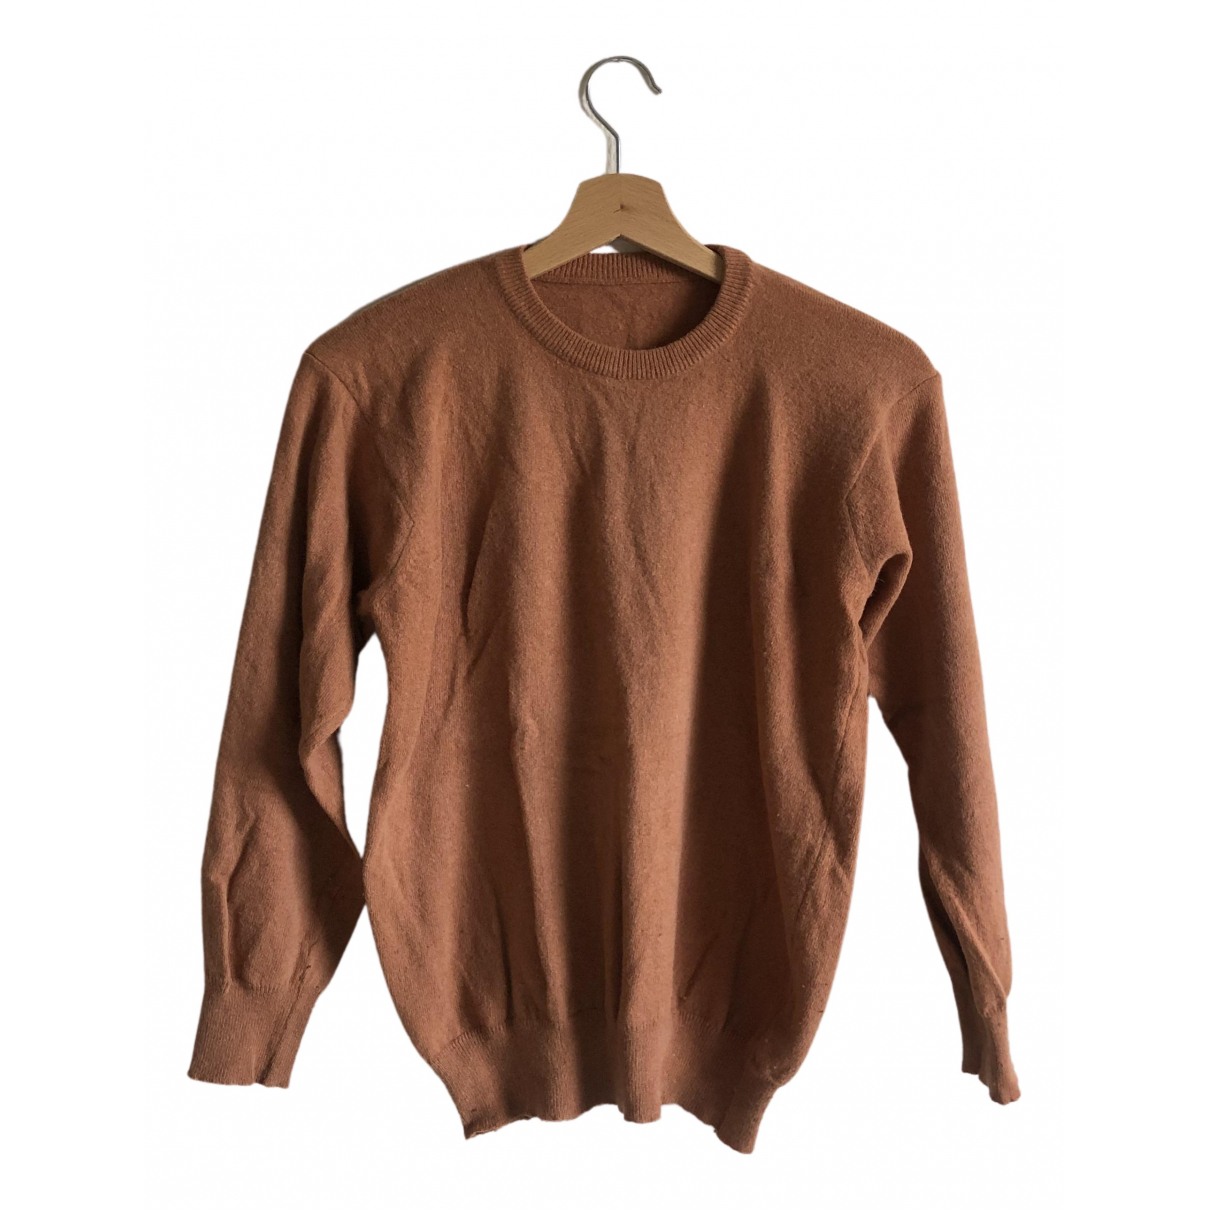 Non Signé / Unsigned N Camel Wool Knitwear for Women S International